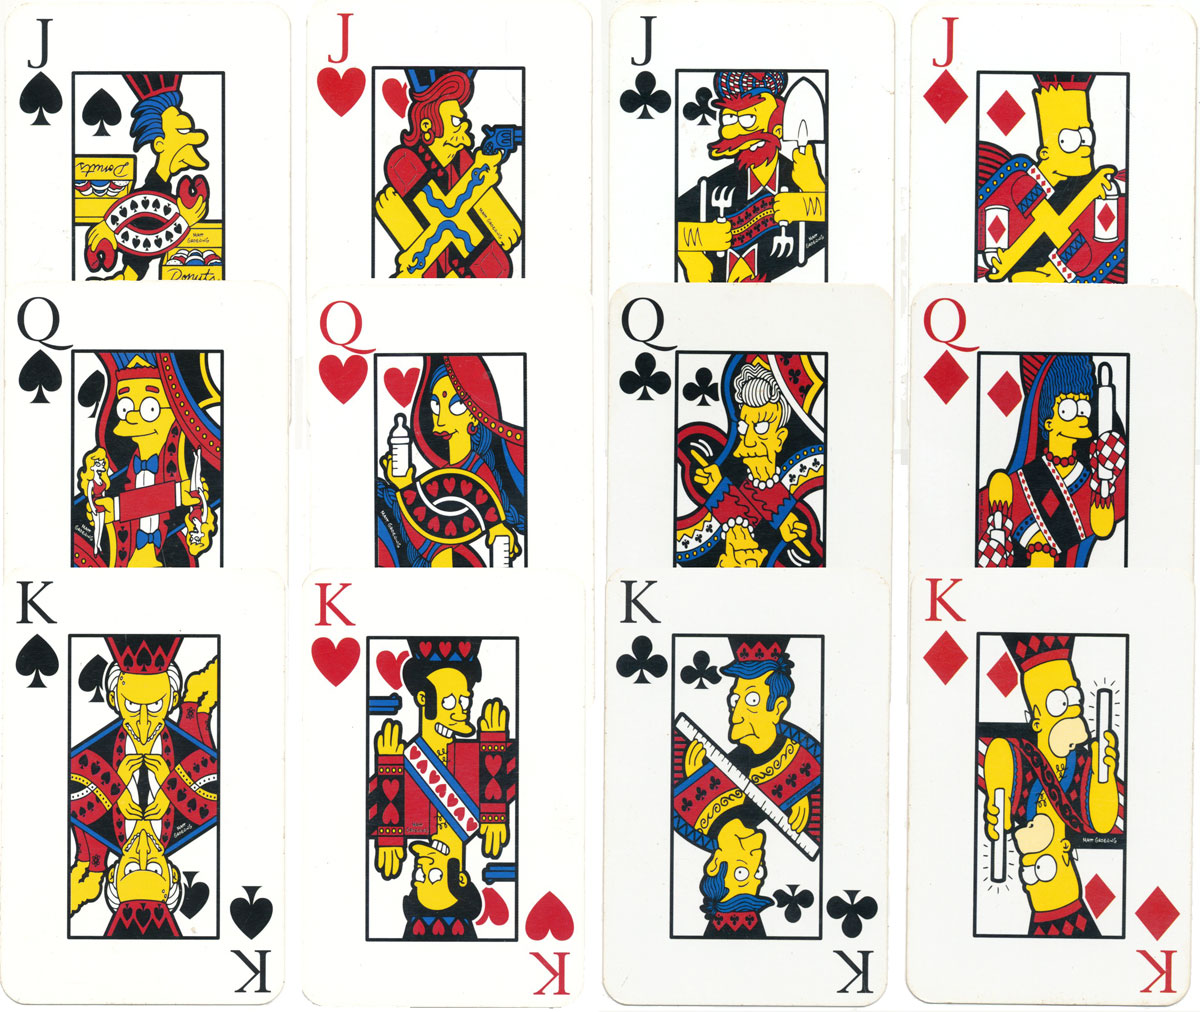 'The Simpsons' playing cards produced by Winning Moves Games, 2003